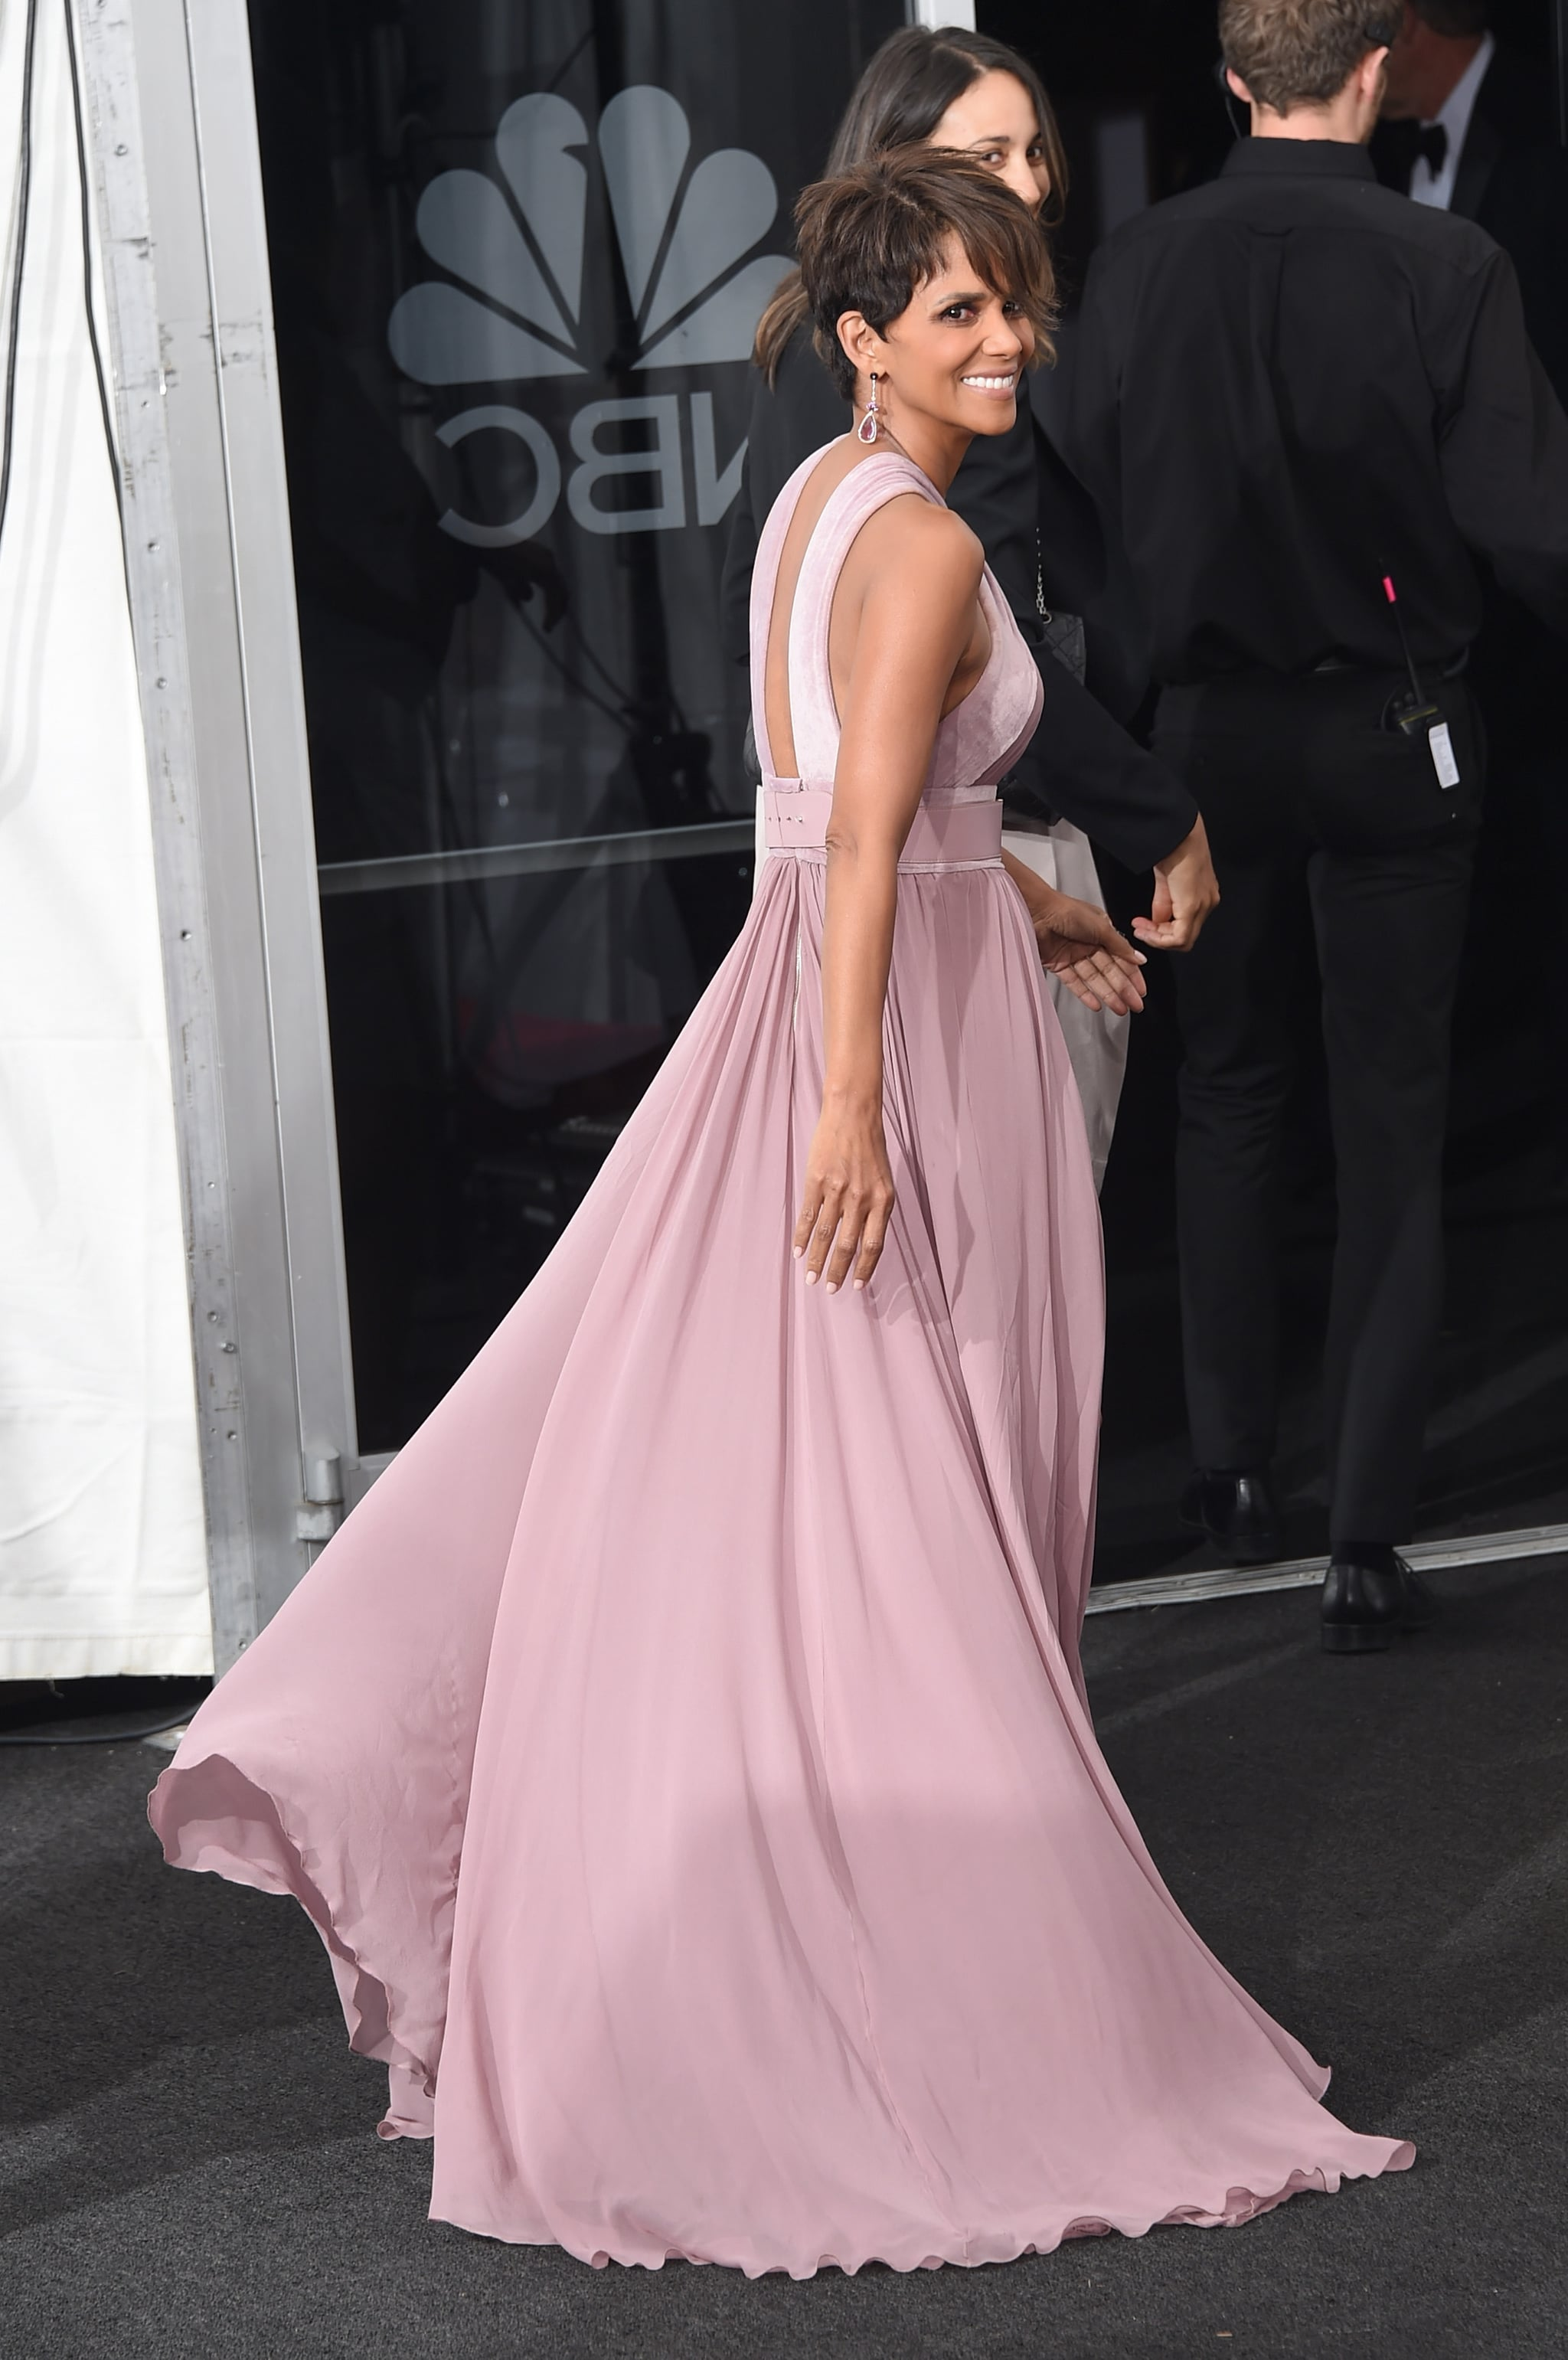 Presenter Halle Berry smiled in her flowing gown.